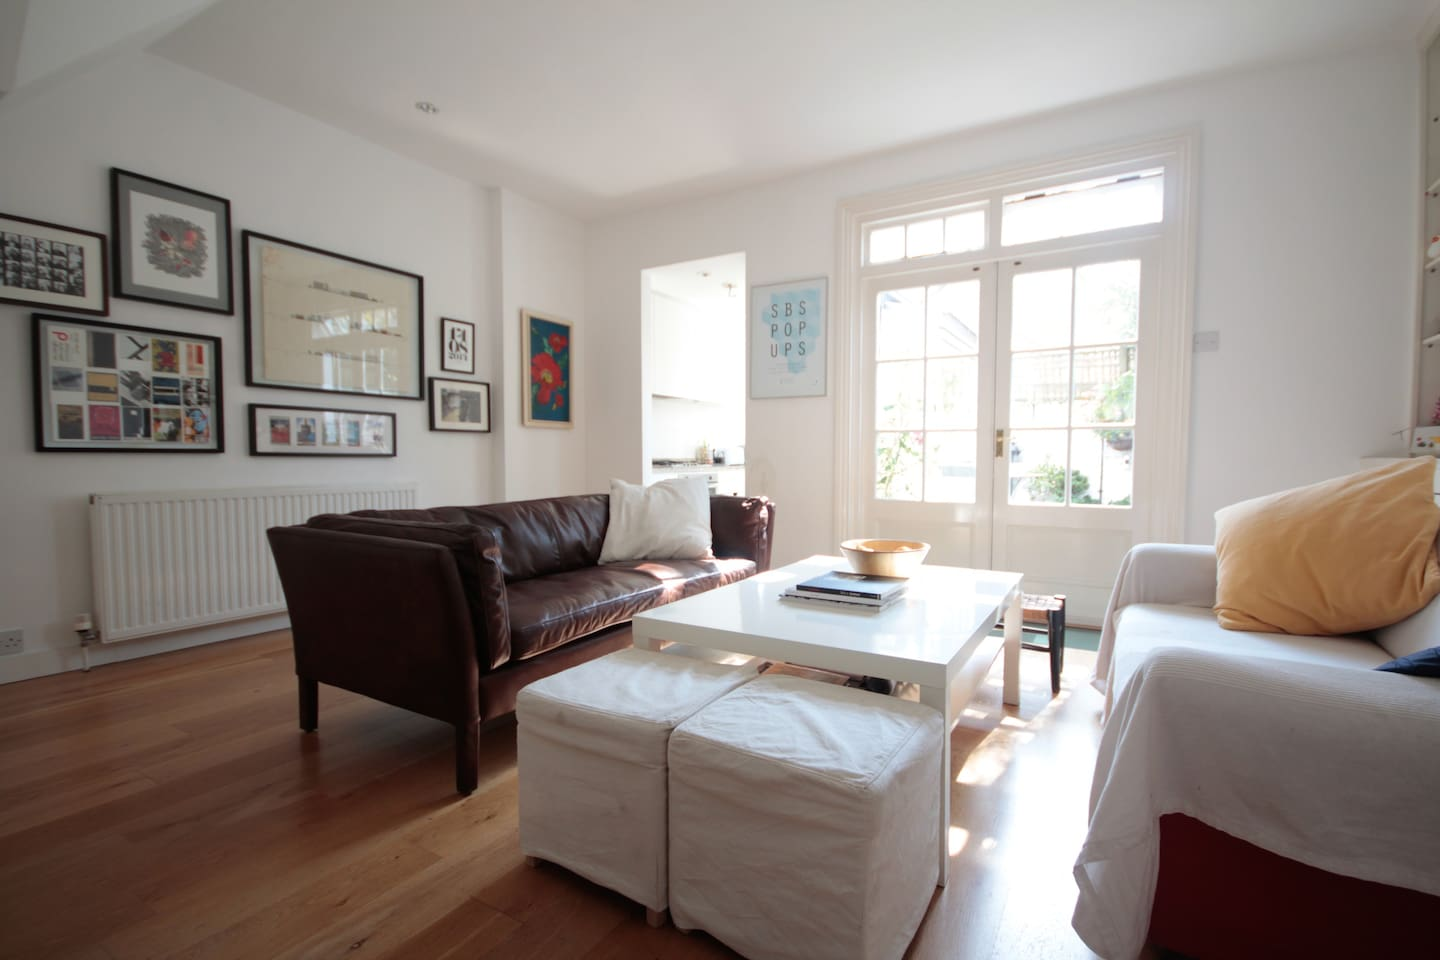 Relax in our bright living space, which opens directly onto our garden.